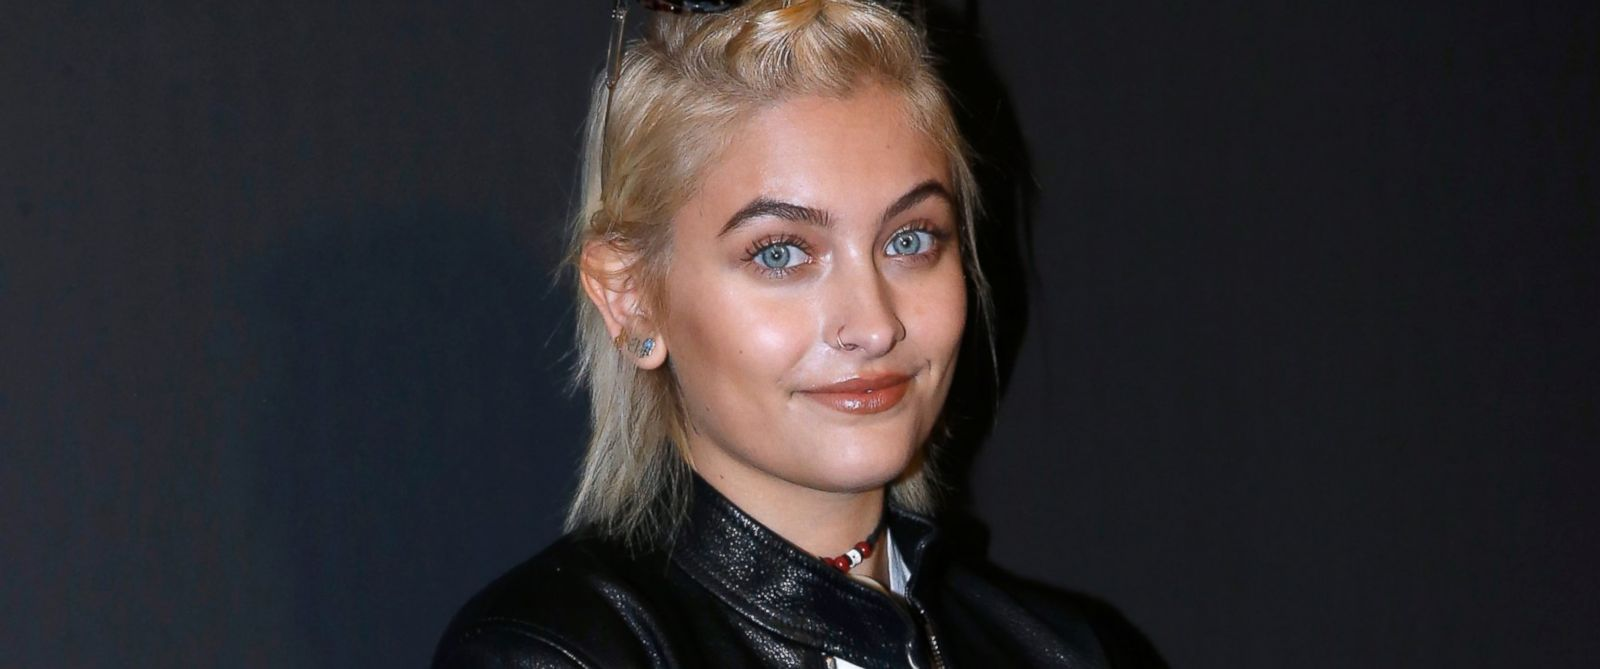 paris jackson worldparis jackson 2016, paris jackson 2017, paris jackson vk, paris jackson wiki, paris jackson tattoo, paris jackson chanel, paris jackson mother, paris jackson star, paris jackson twitter, paris jackson instagram, paris jackson 2015, paris jackson net worth, paris jackson news, paris jackson фото, paris jackson вики, paris jackson world, paris jackson height, paris jackson age, paris jackson grammy, paris jackson blog